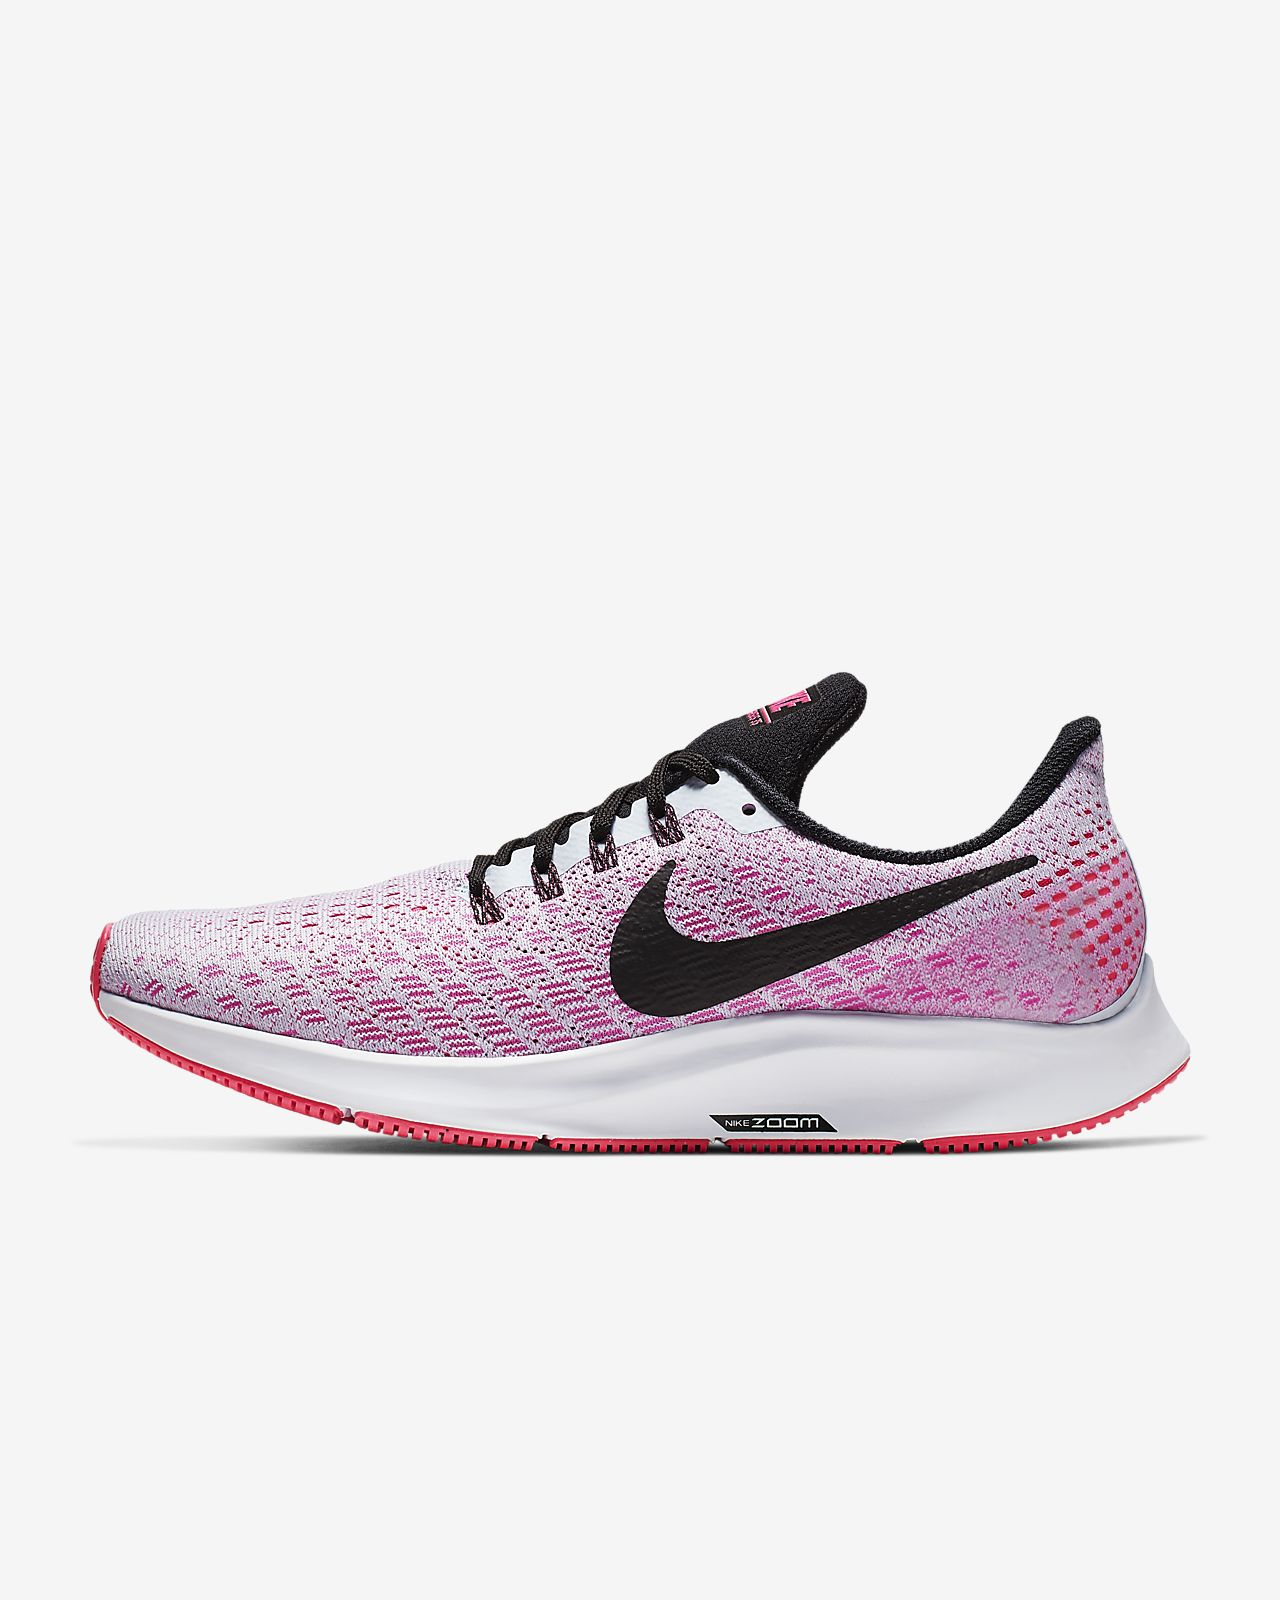 the best attitude 8c4be 16379 ... Nike Air Zoom Pegasus 35 Women s Running Shoe